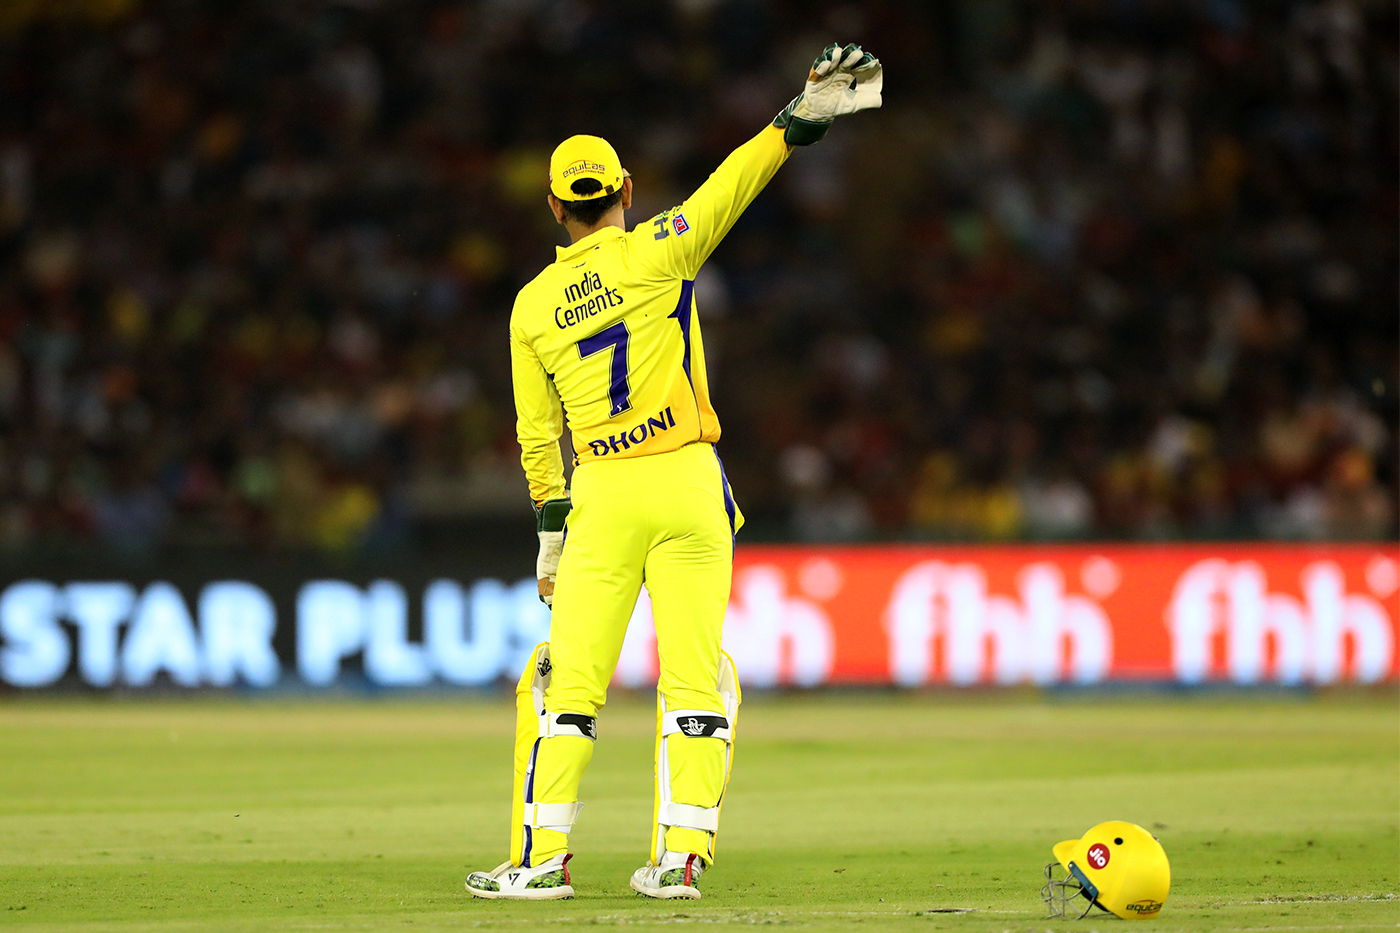 MS Dhoni instructs his players in IPL 2018. (Image: CricketAddictor.com)